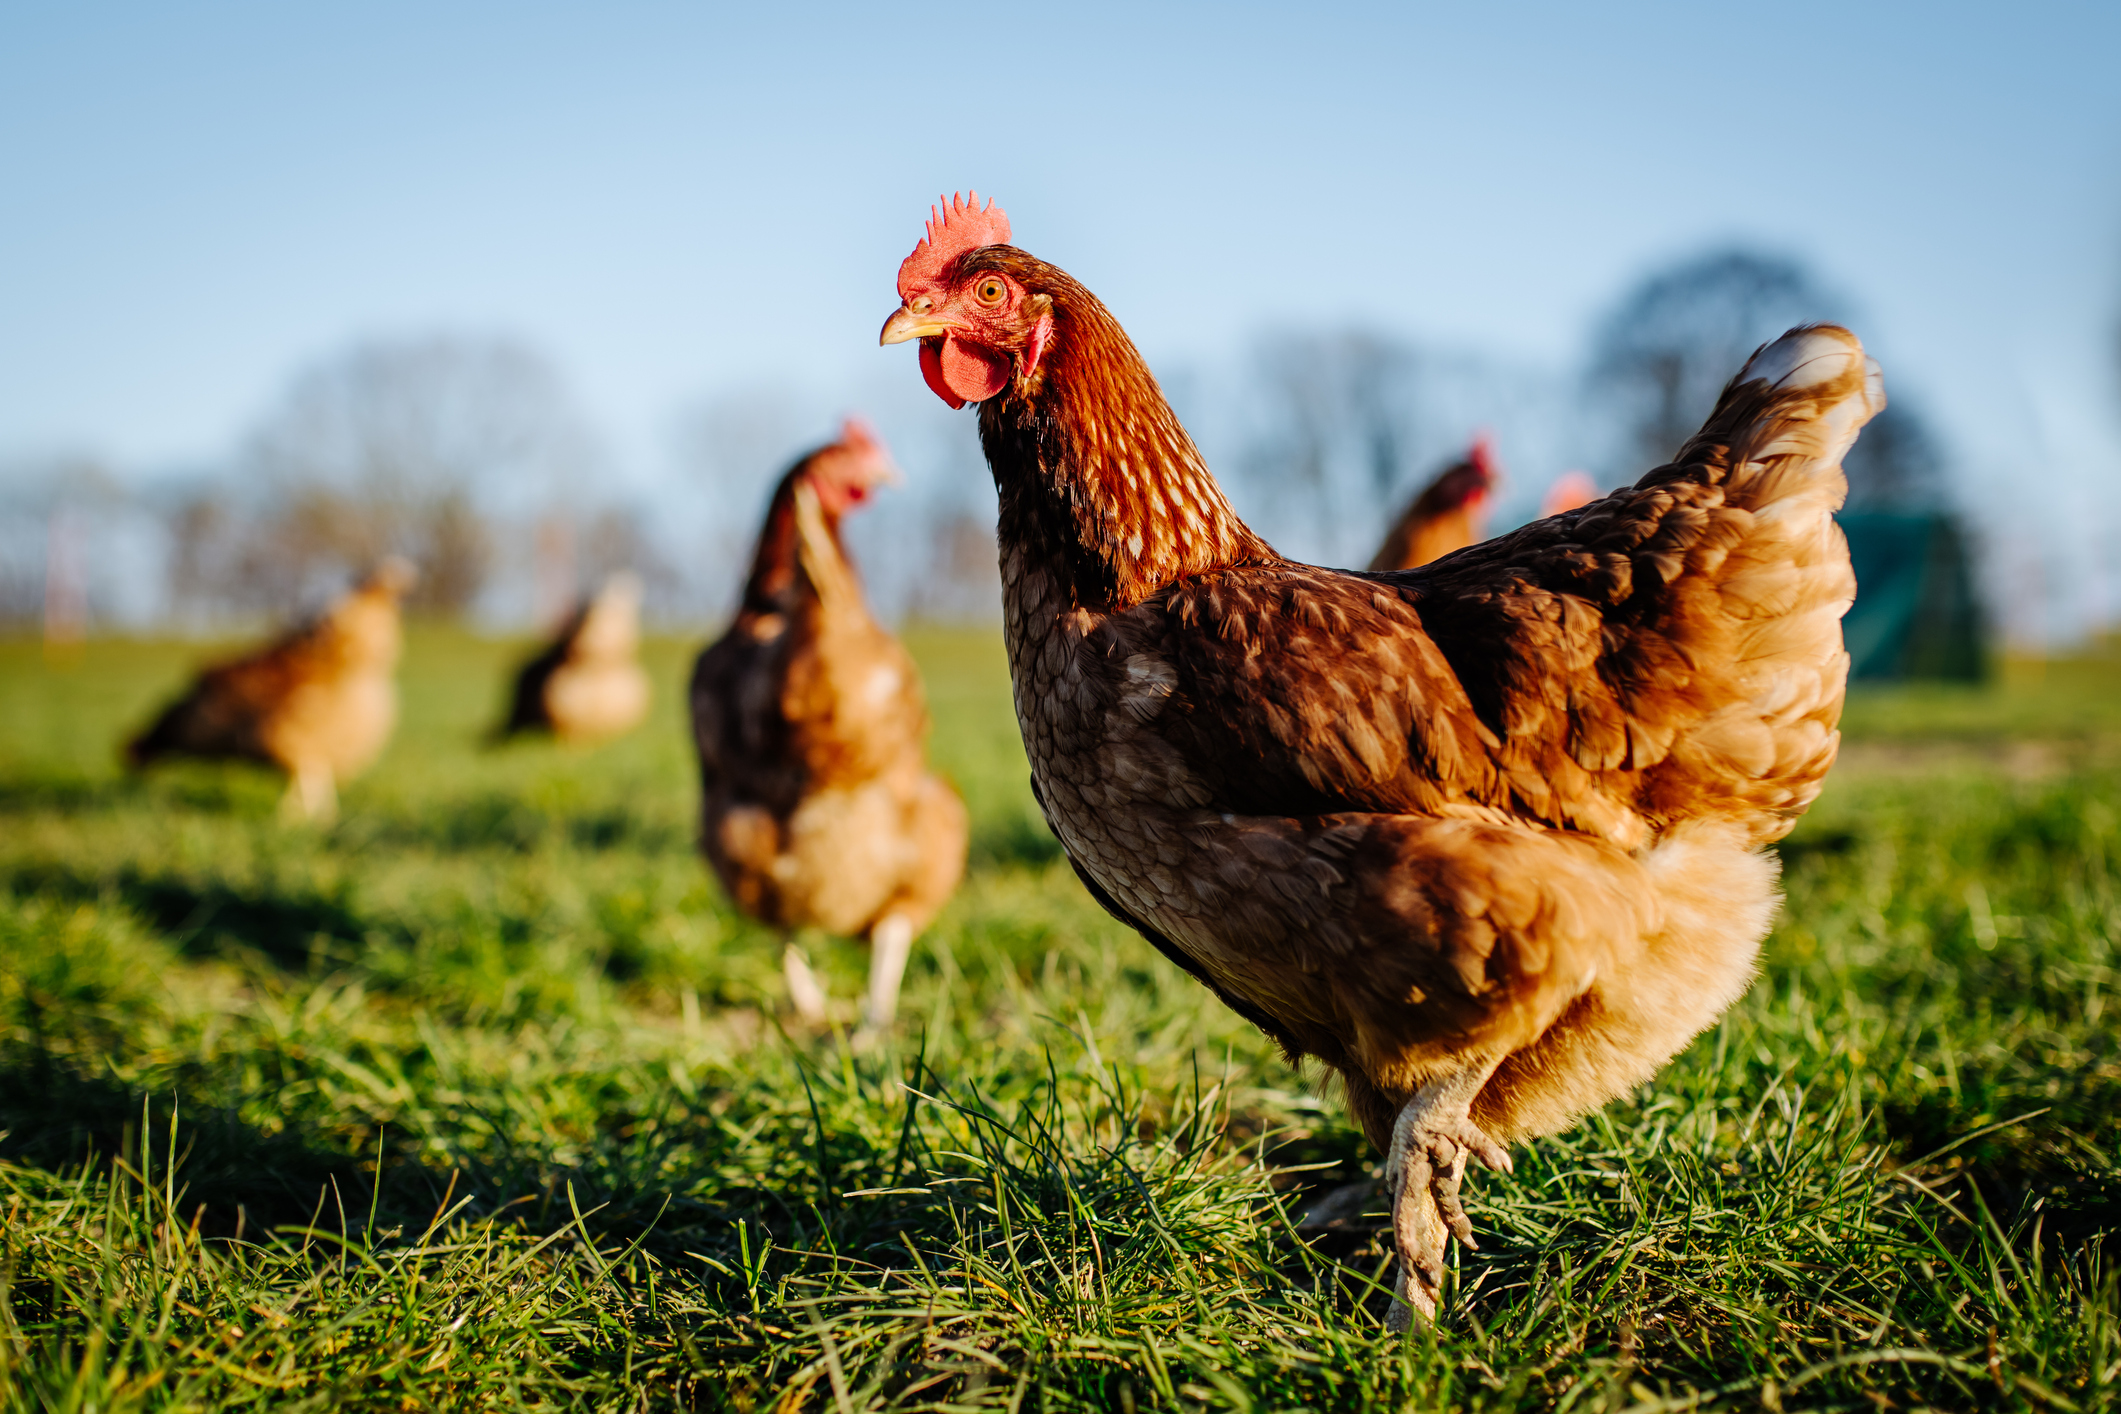 several chickens in grass field